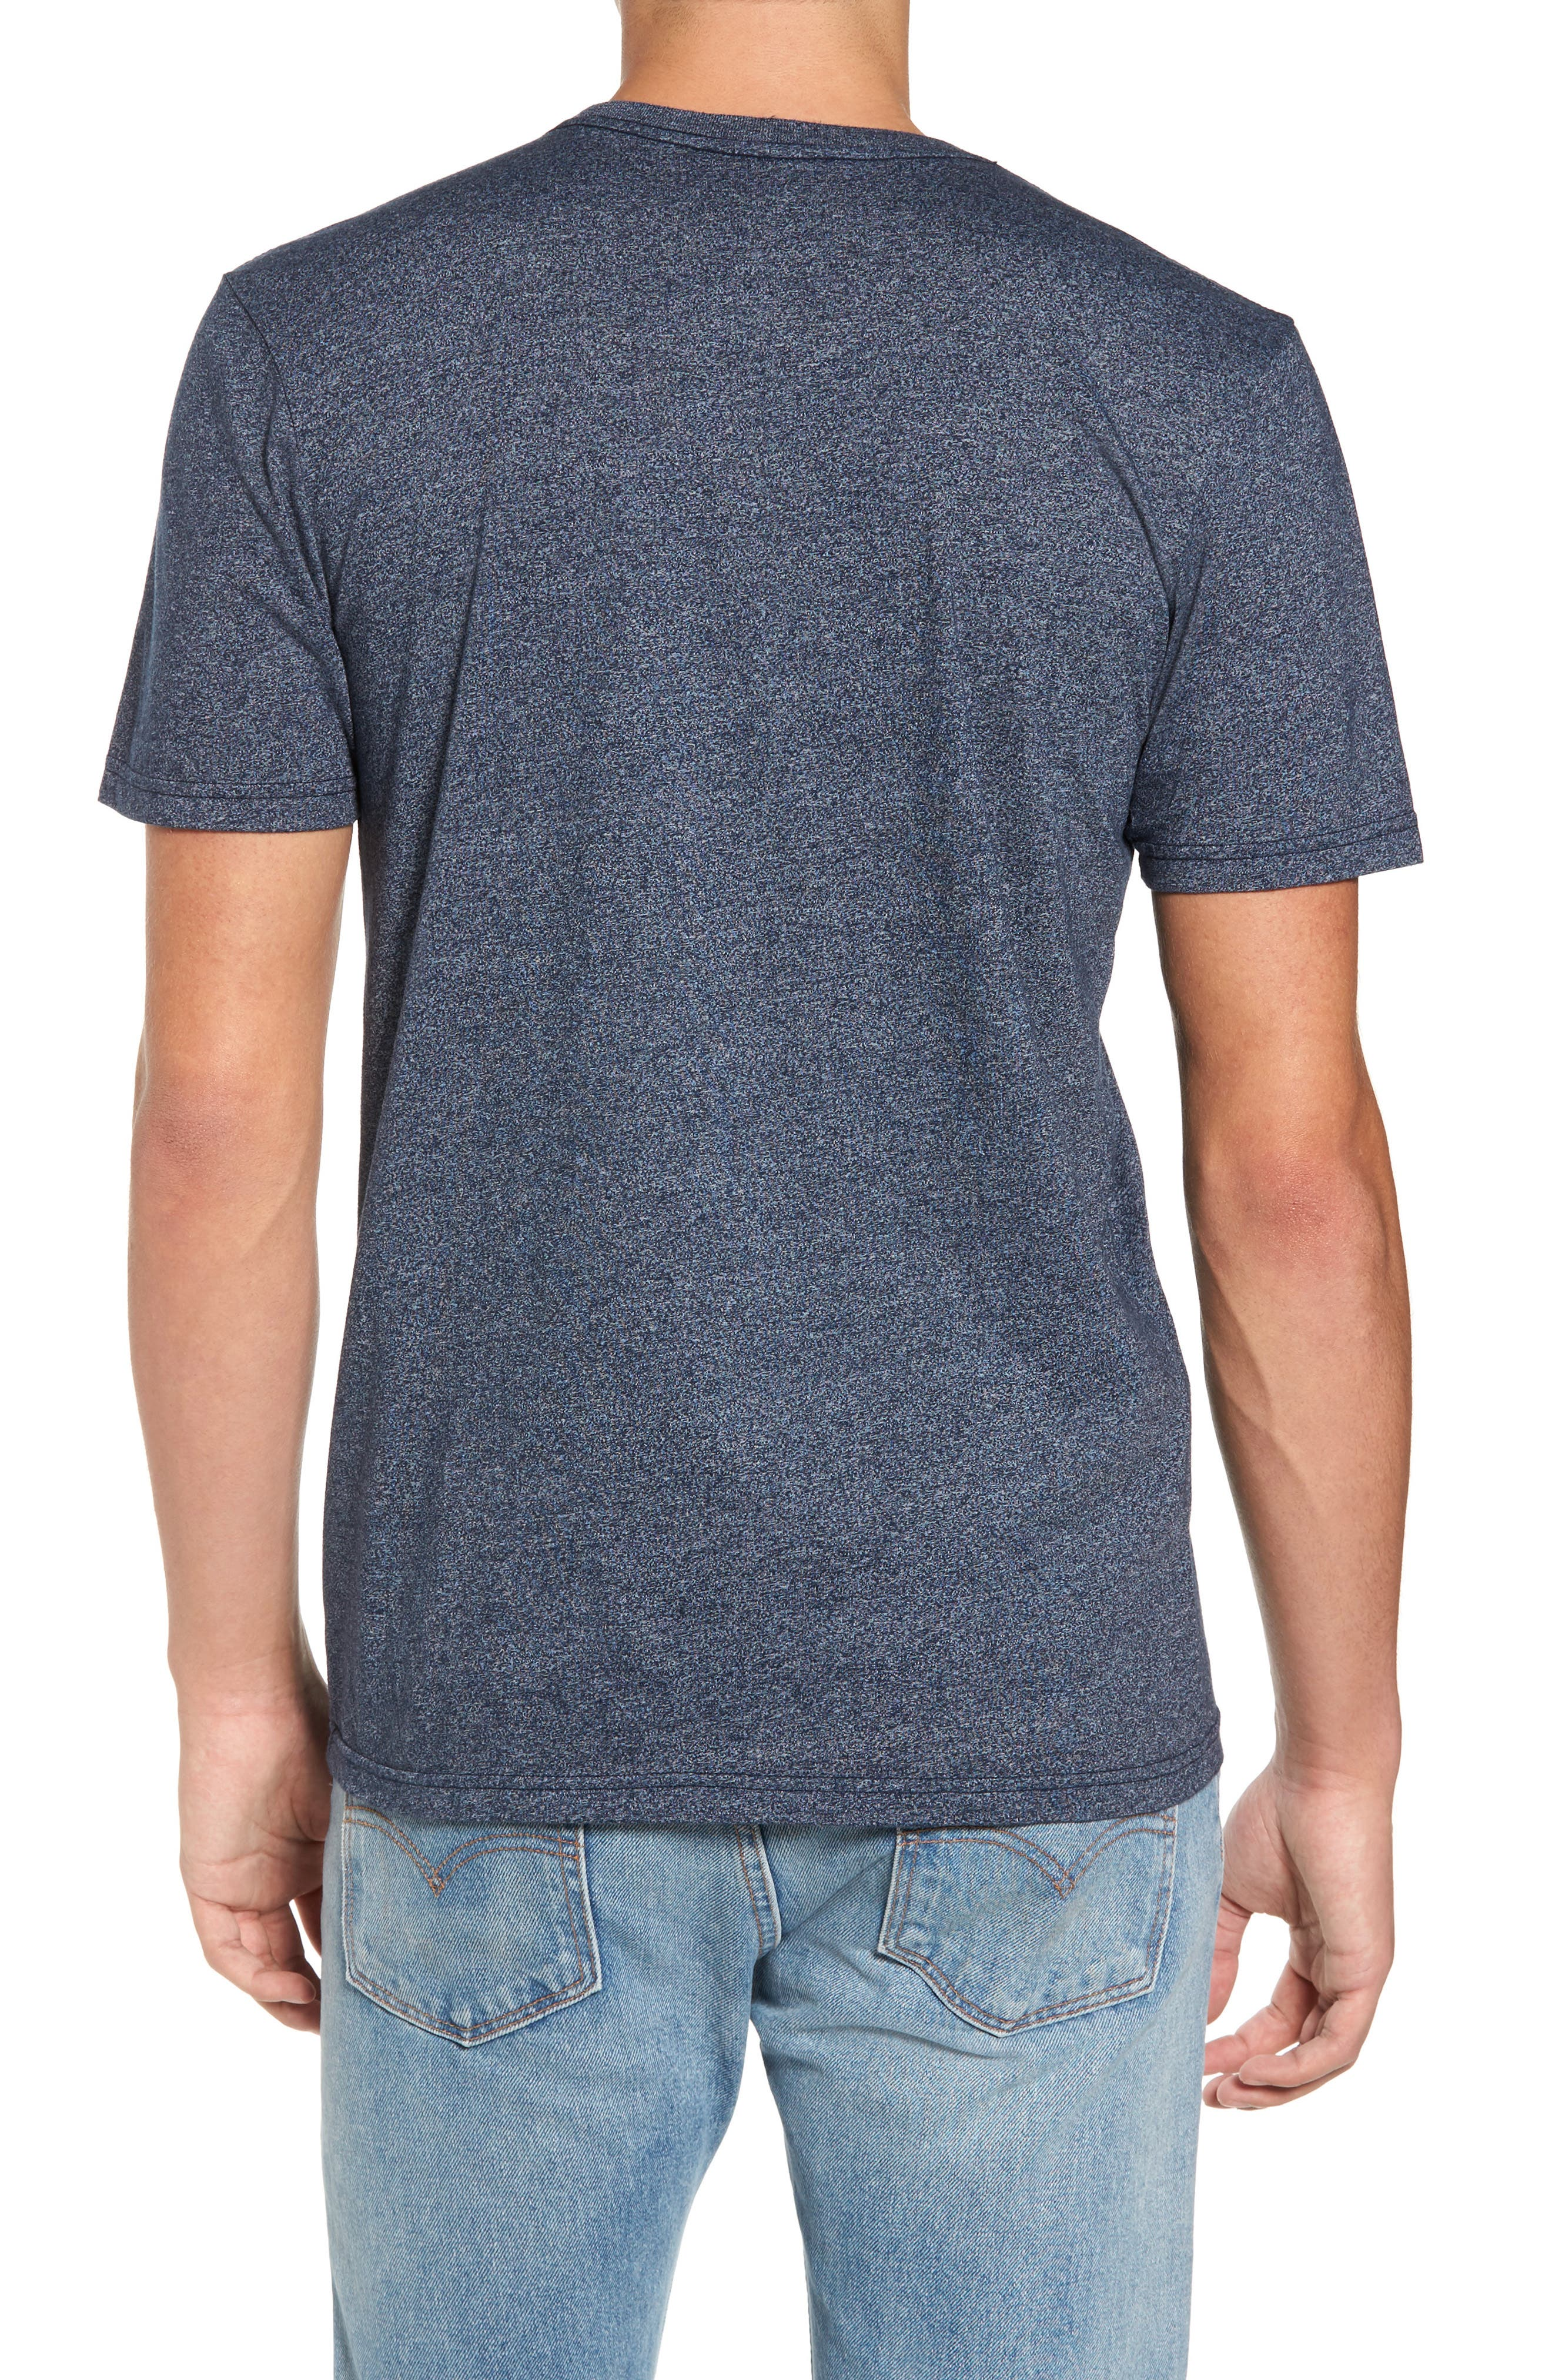 Alternate Image 2  - Rip Curl Shred City Short Sleeve T-Shirt